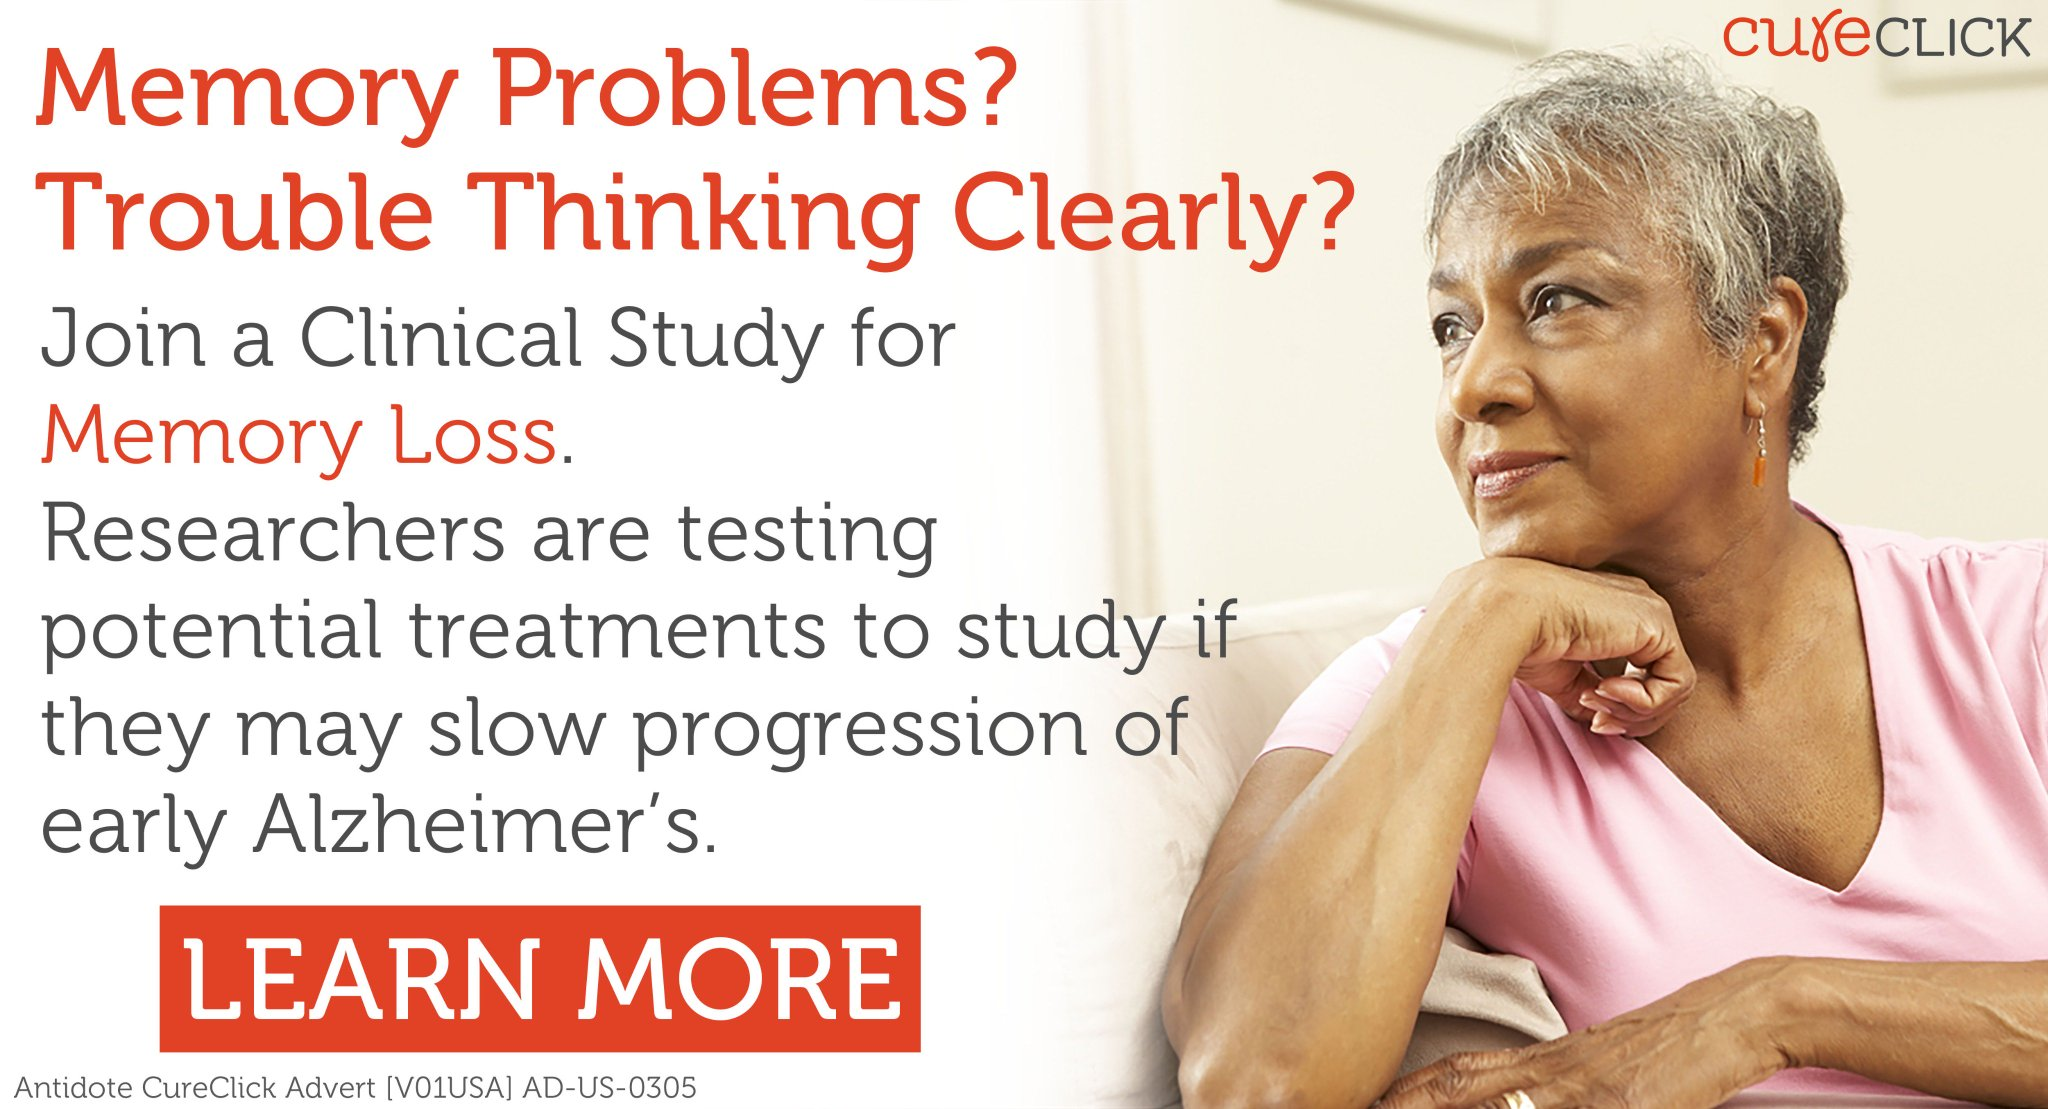 Loved one experiencing #MemoryLoss or #Forgetfulness? Clinical Study now enrolling. https://t.co/D3xtE486q6 https://t.co/oT4MXEYyYC